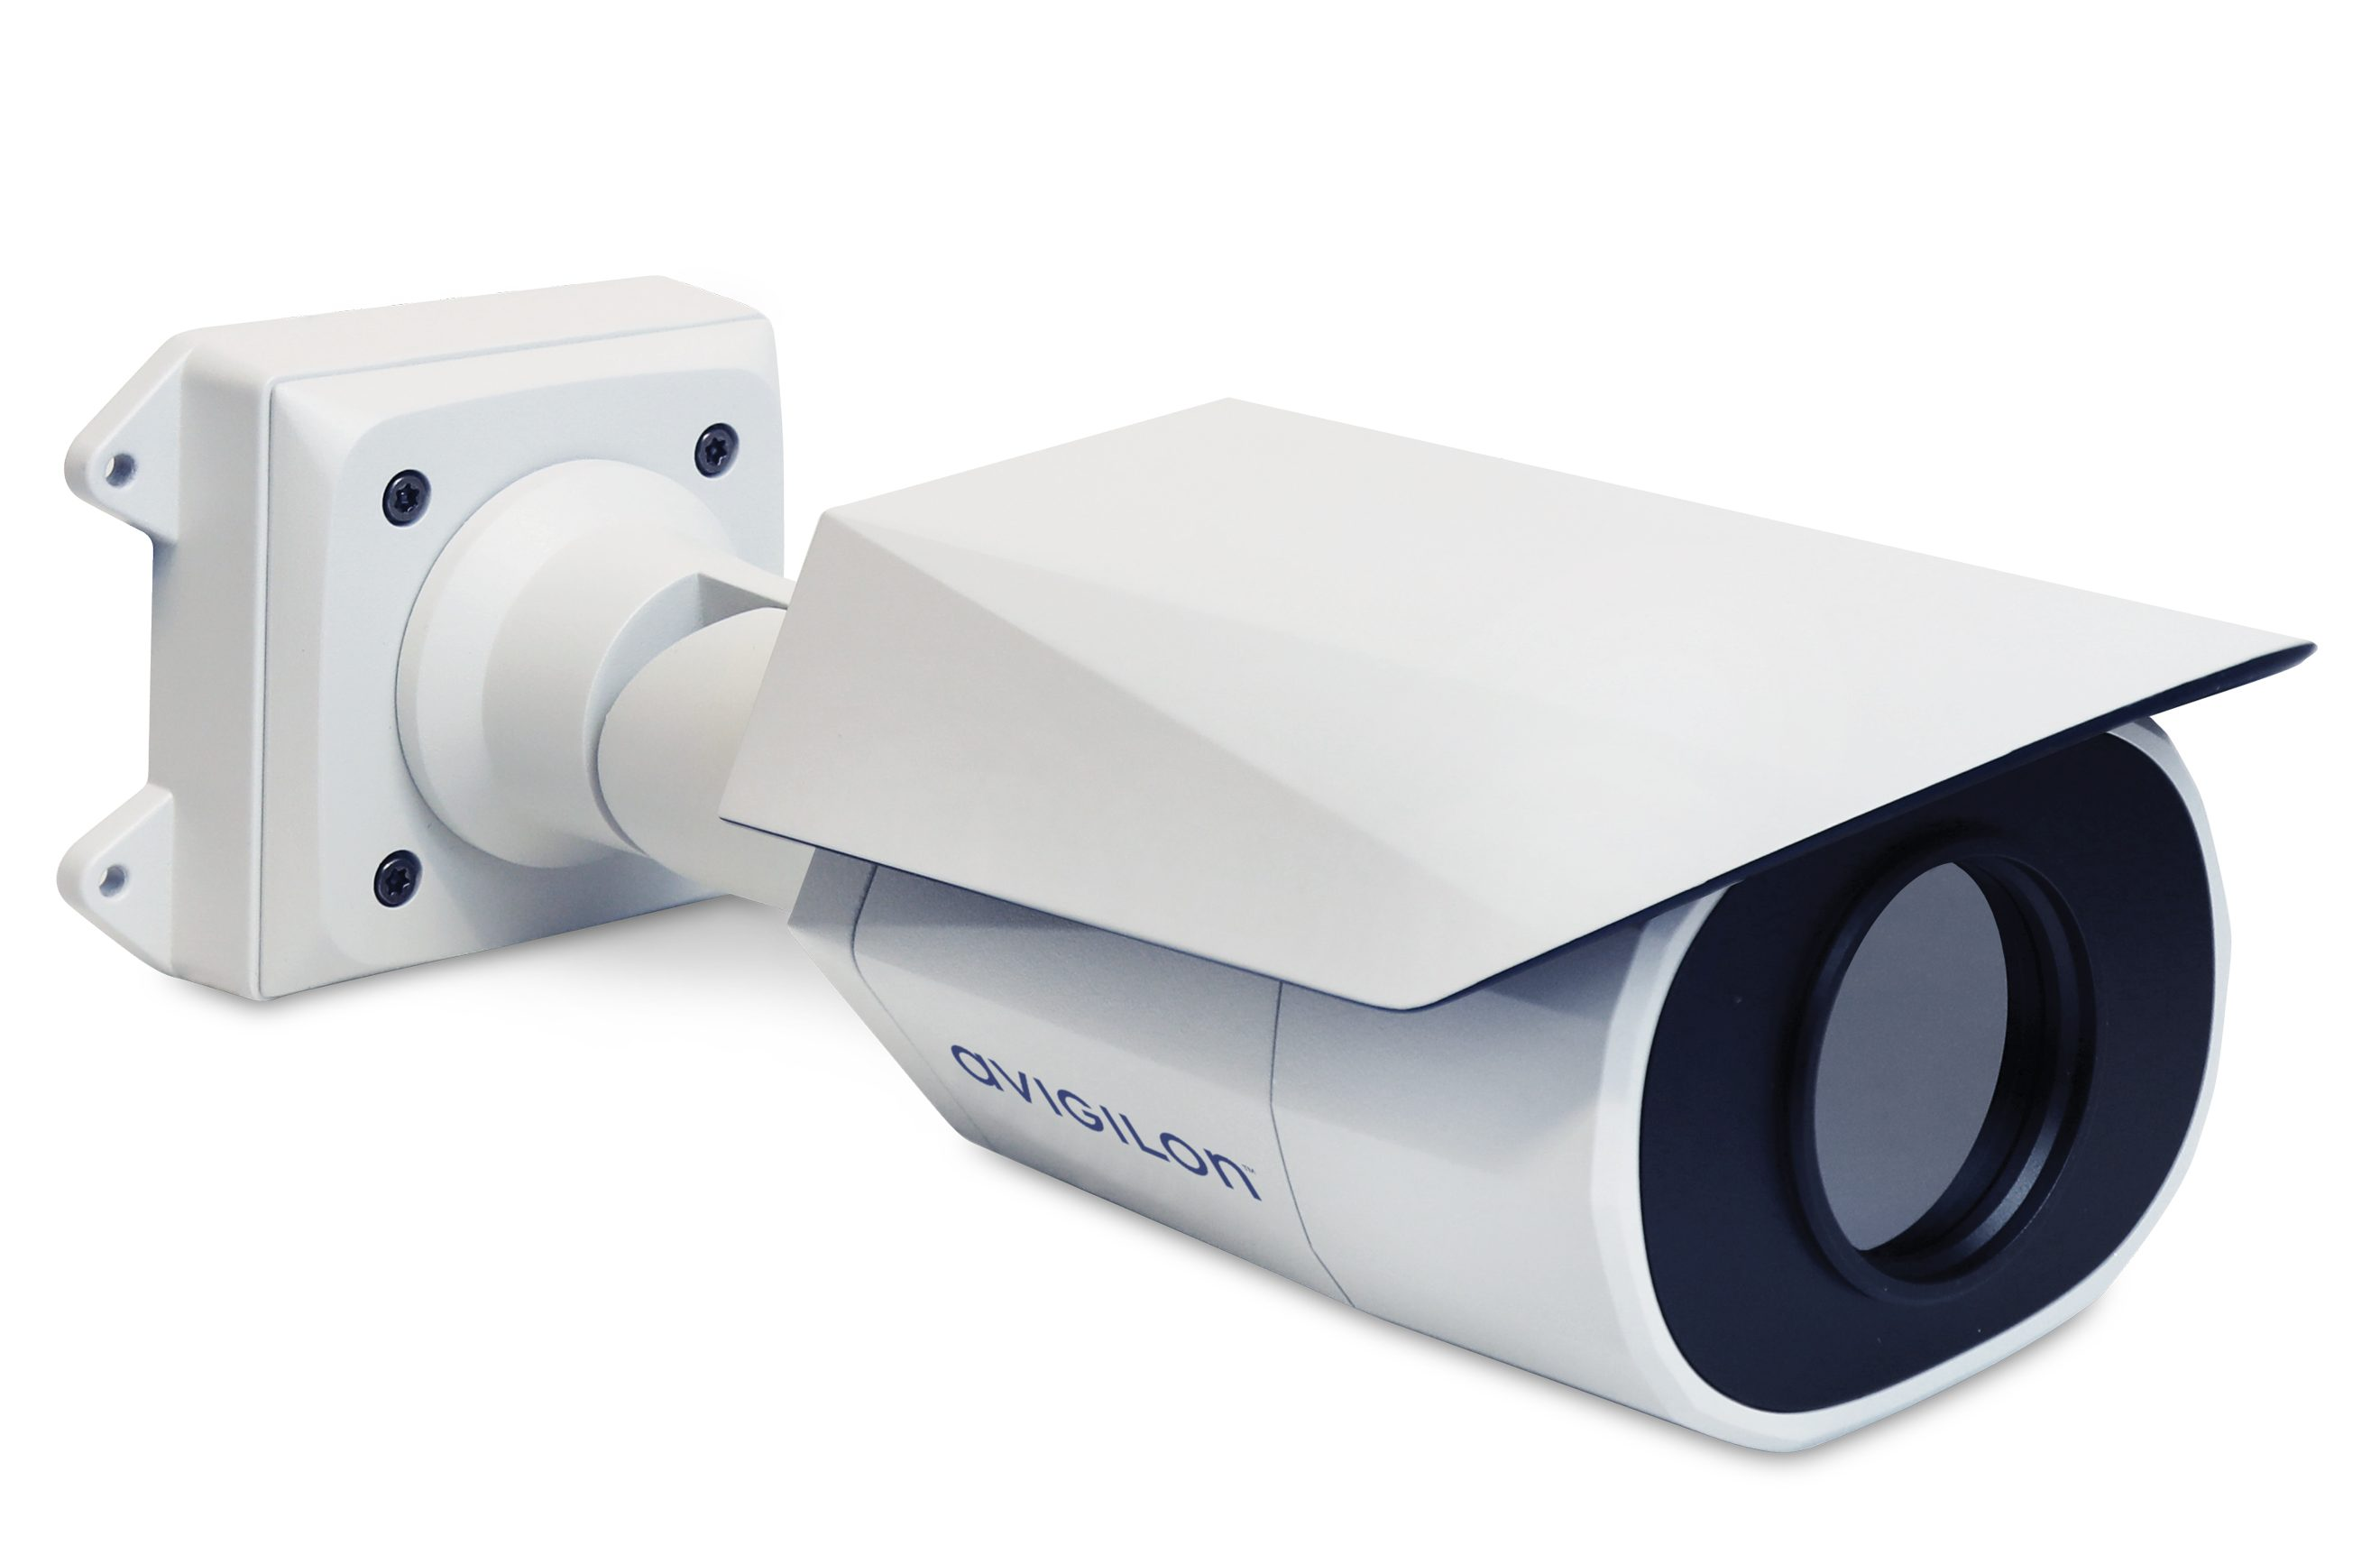 Avigilon H4 Thermal camera and application